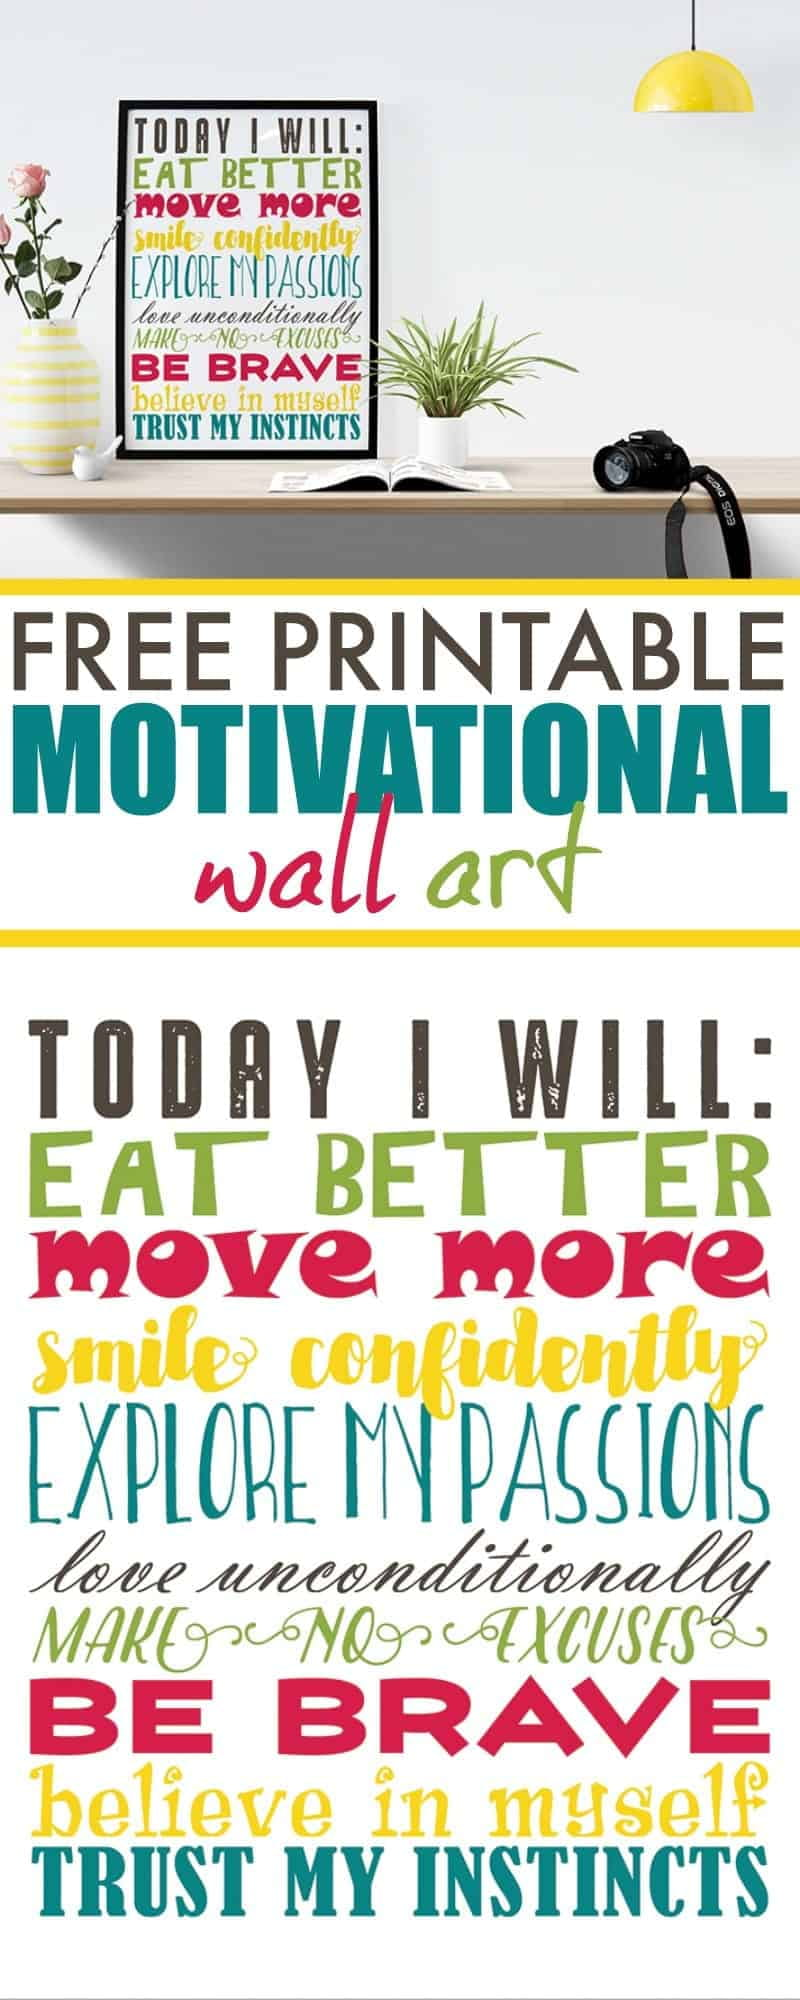 Find the motivation you need to achieve your healthy lifestyle and fitness goals with this free printable motivational wall art.